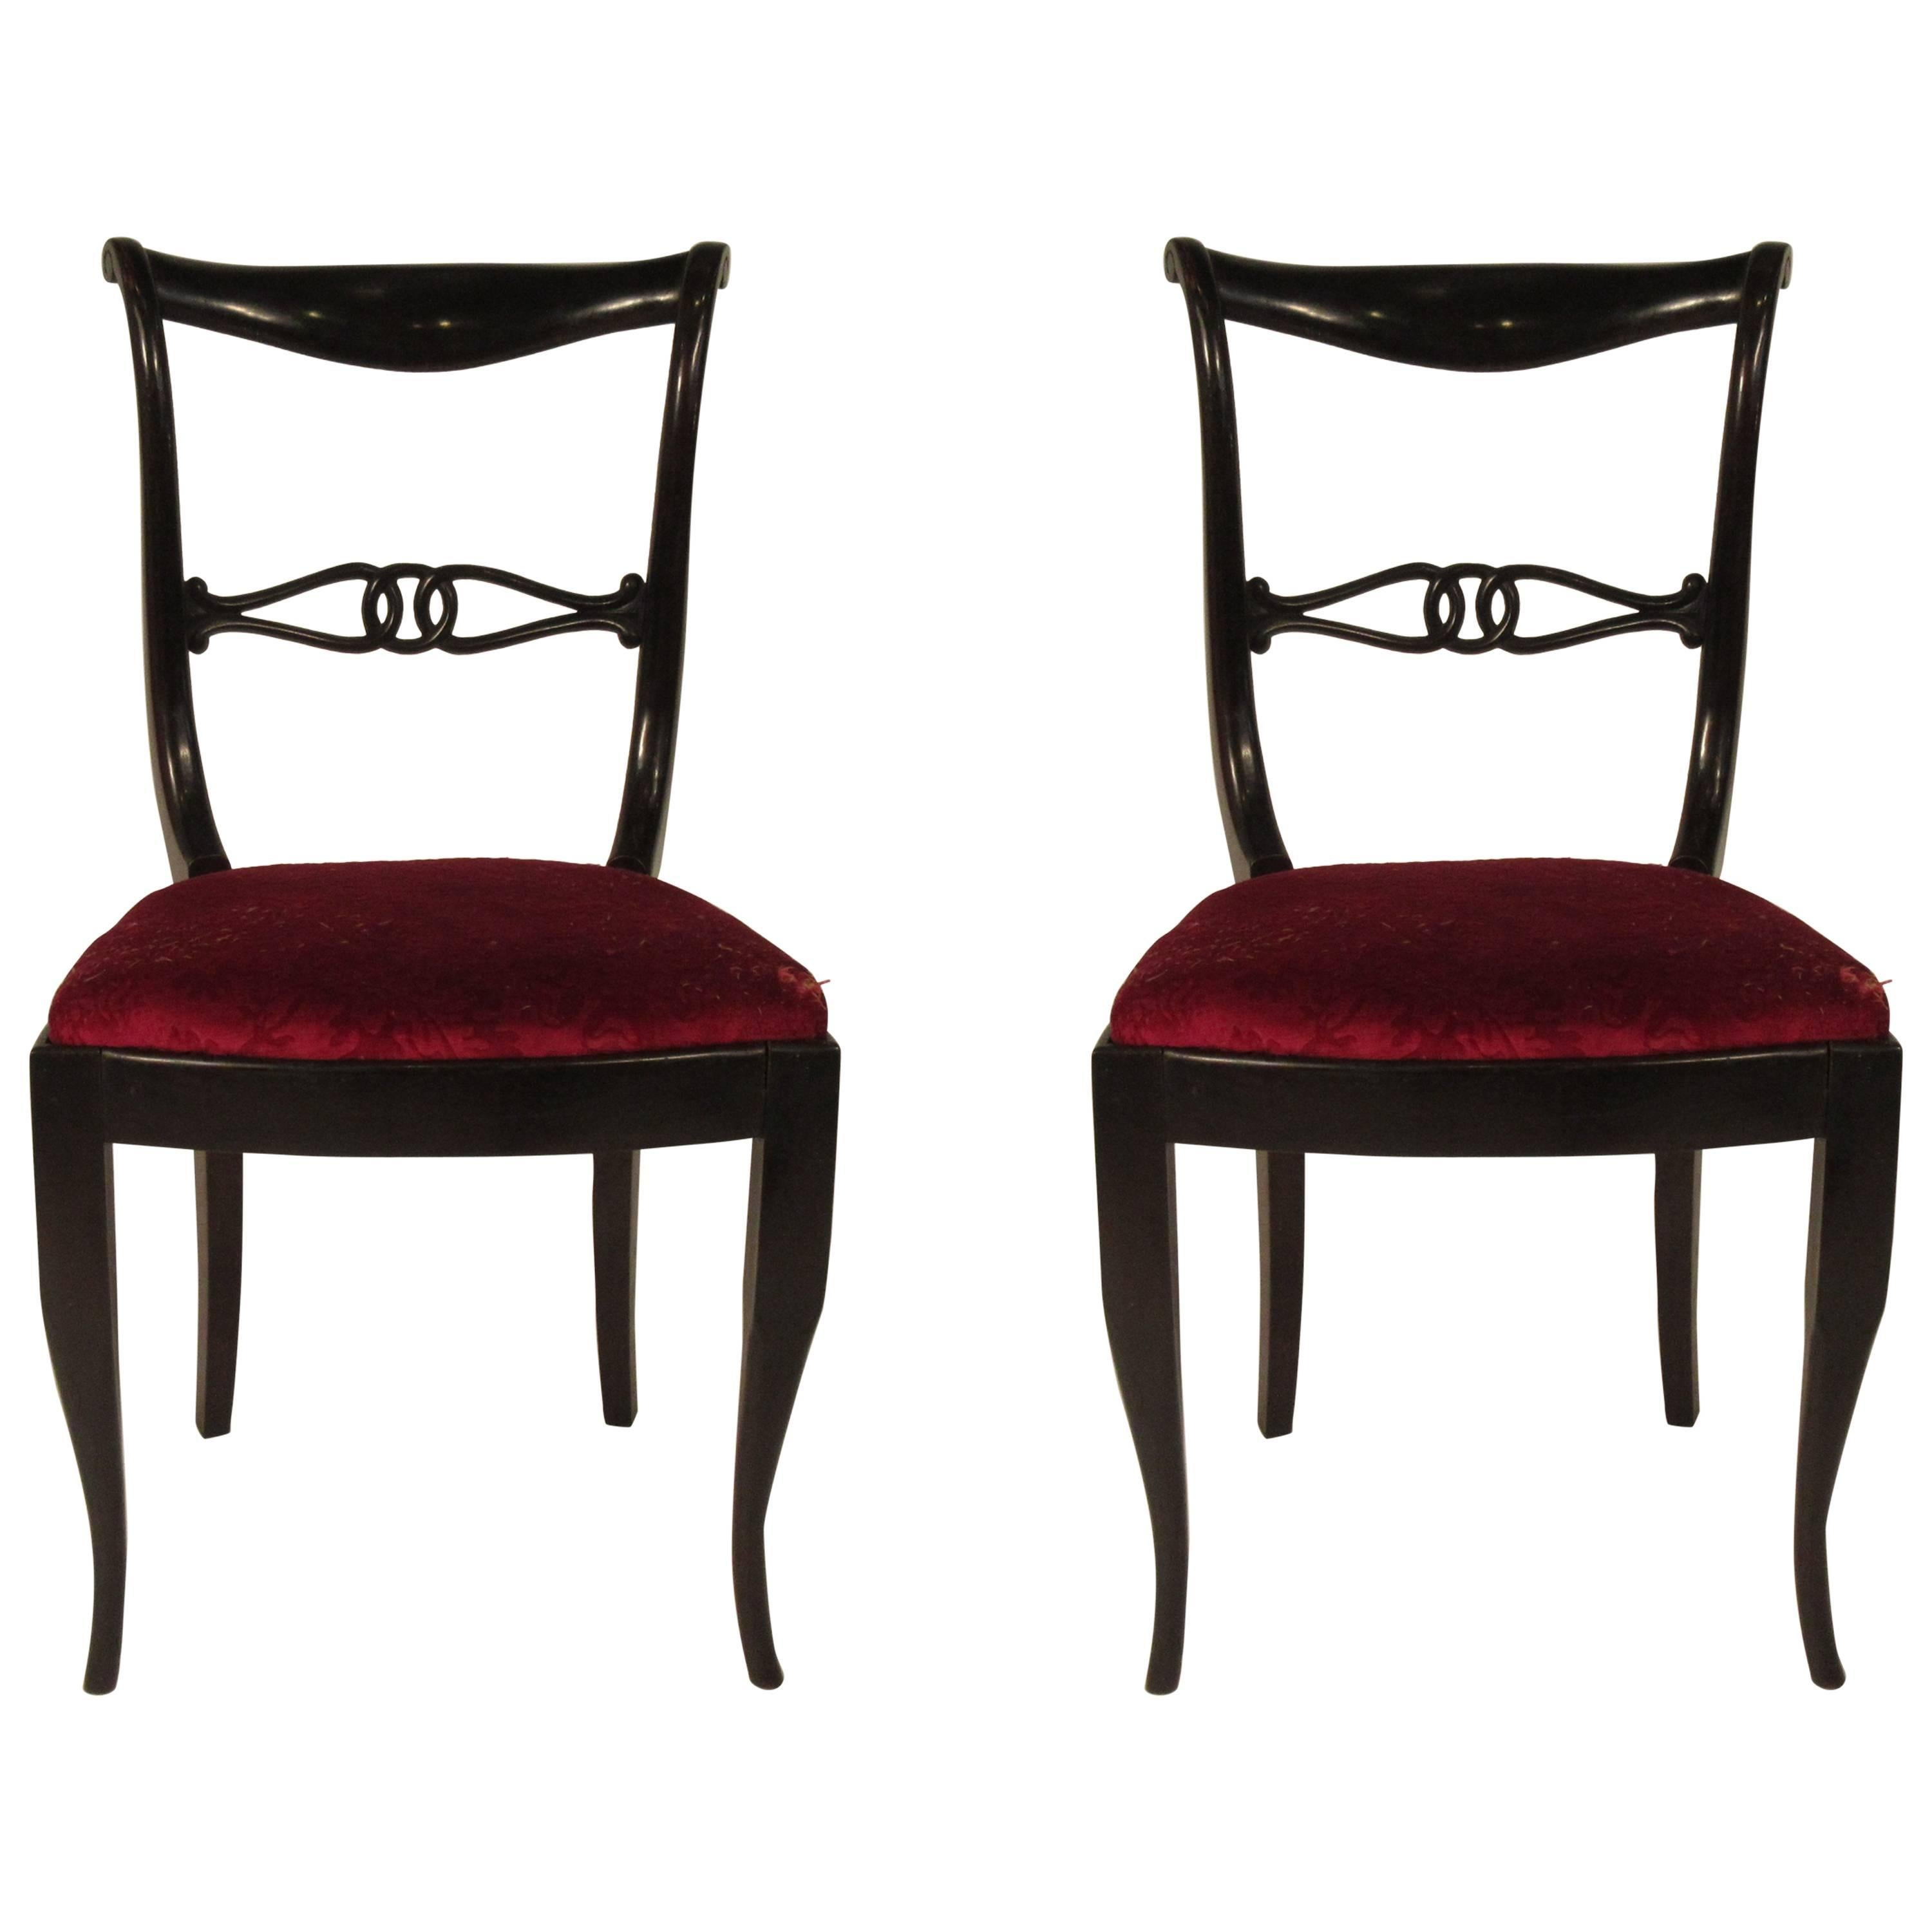 Pair of 1940s Italian Side Chairs